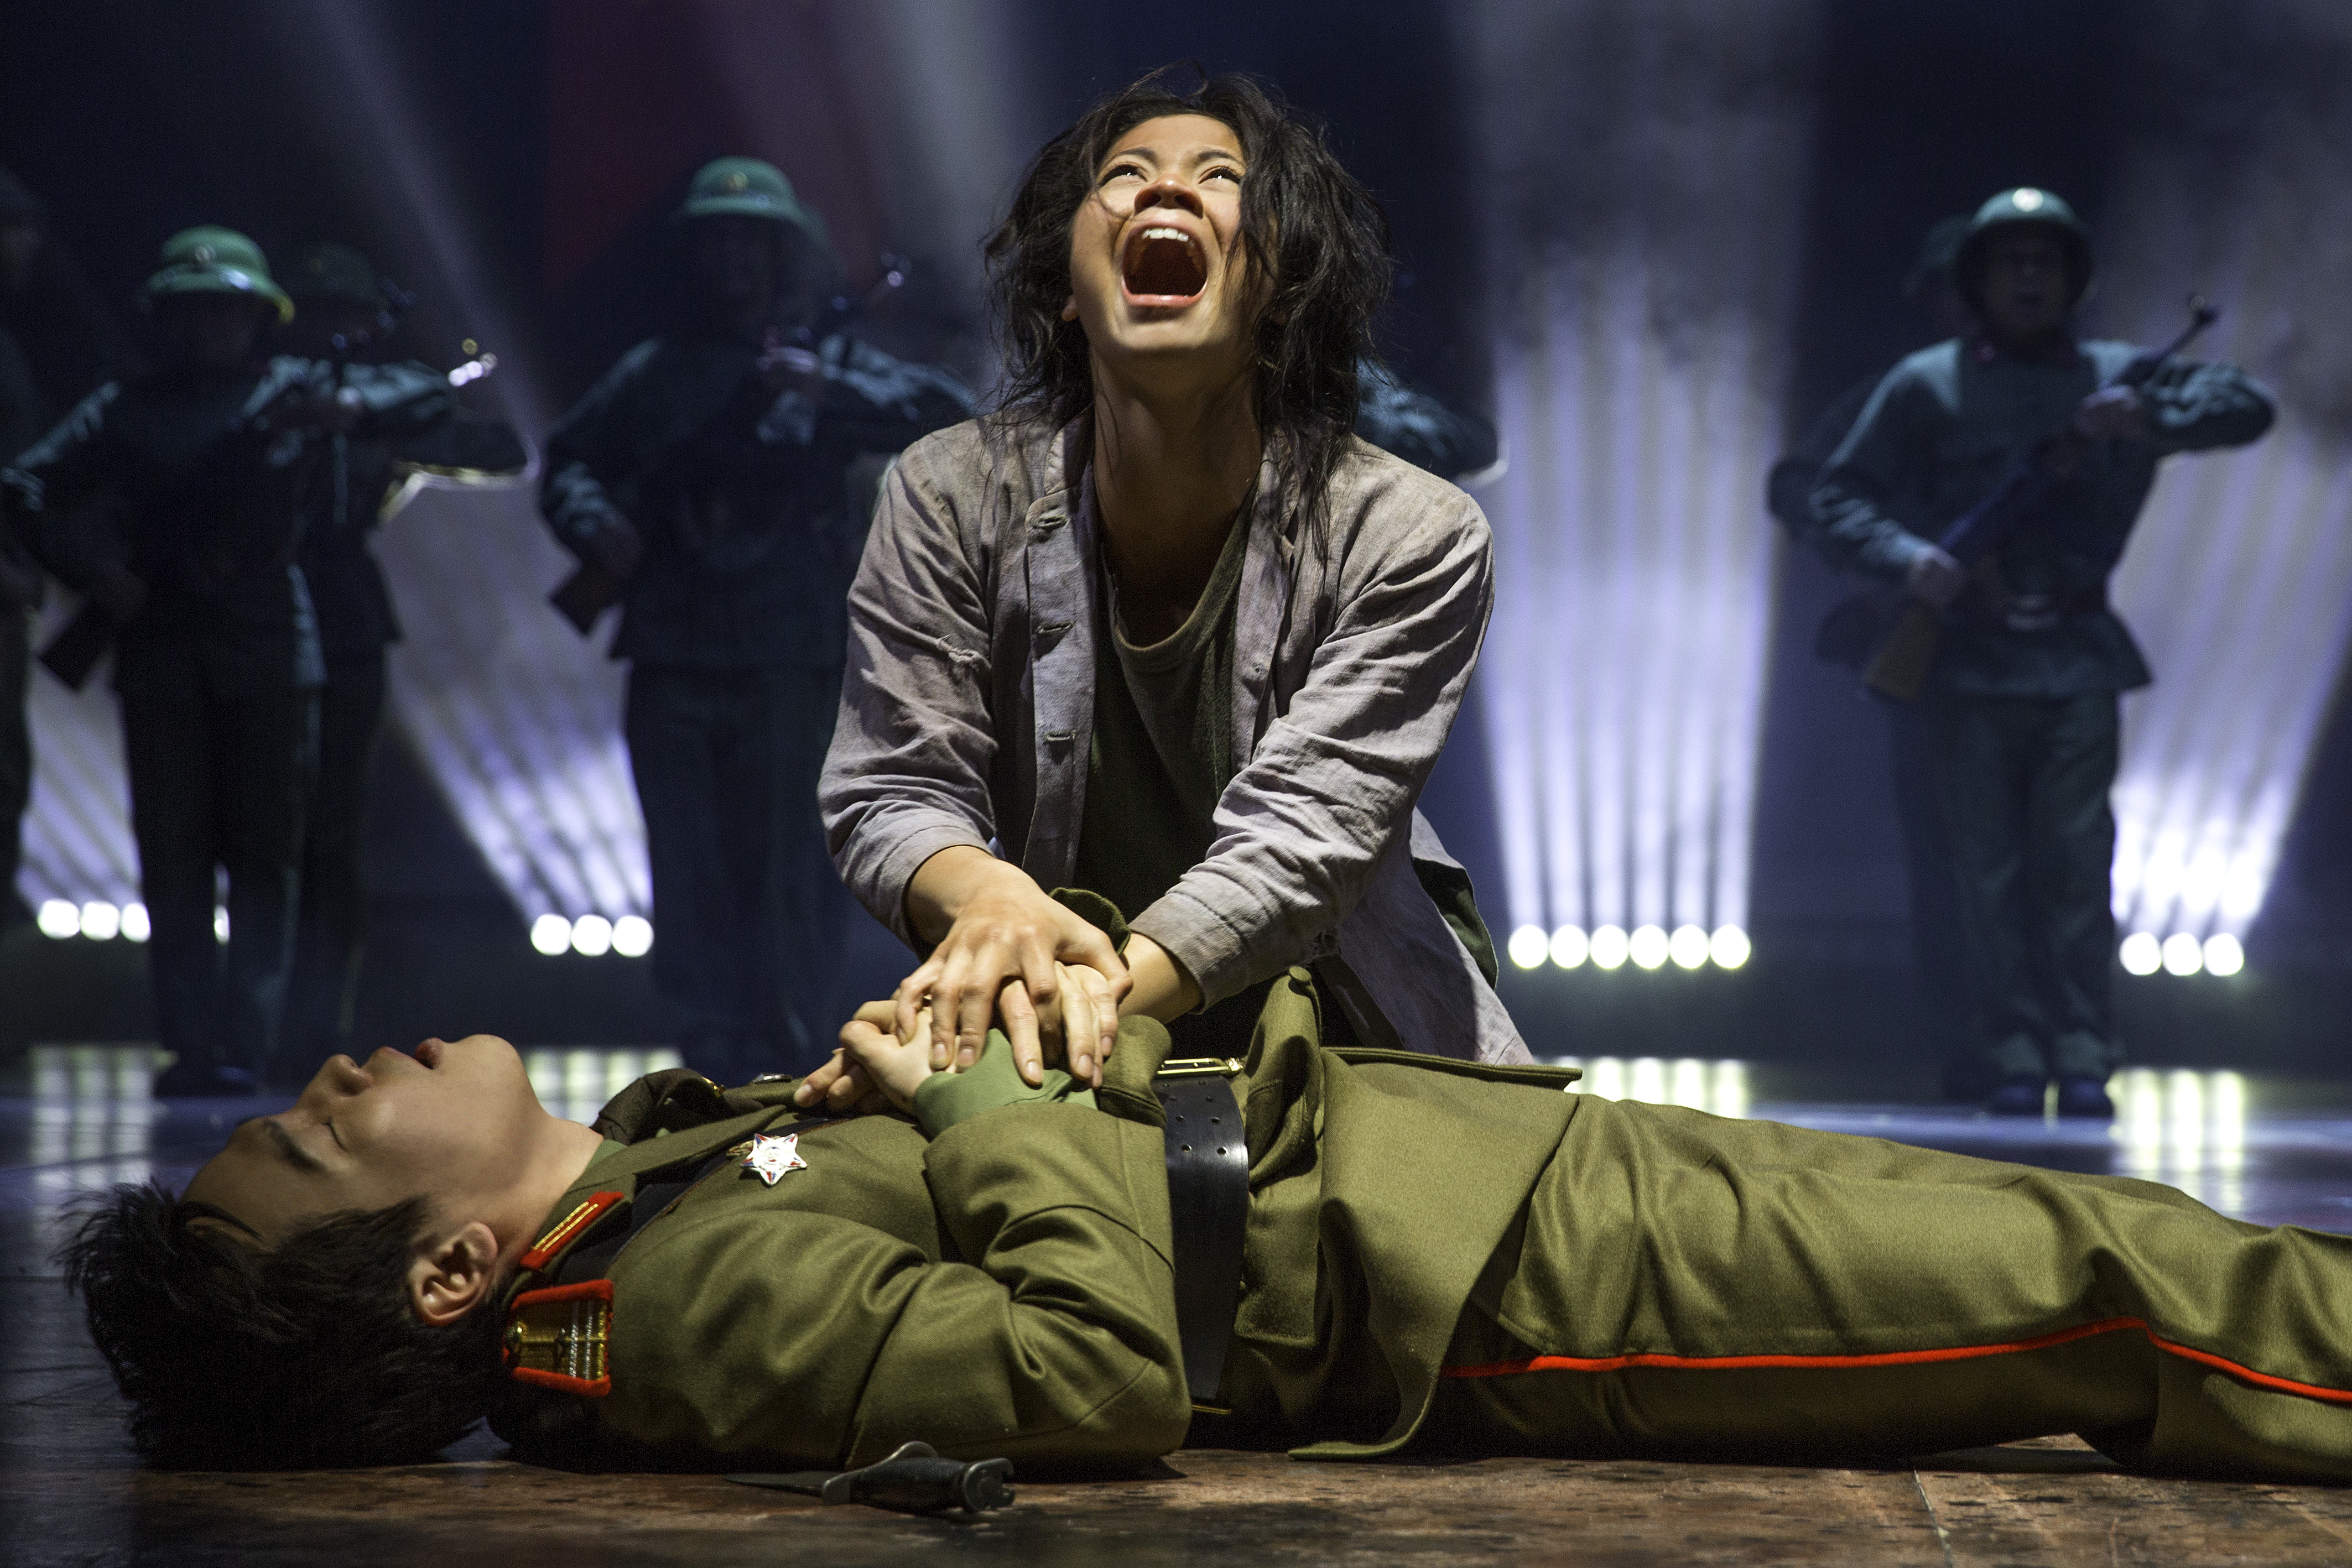 PRESS RELEASE: Cameron Mackintosh's Spectacular New Production of Miss Saigon to play Birmingham Hippodrome in 2017 - Birmingham Hippodrome